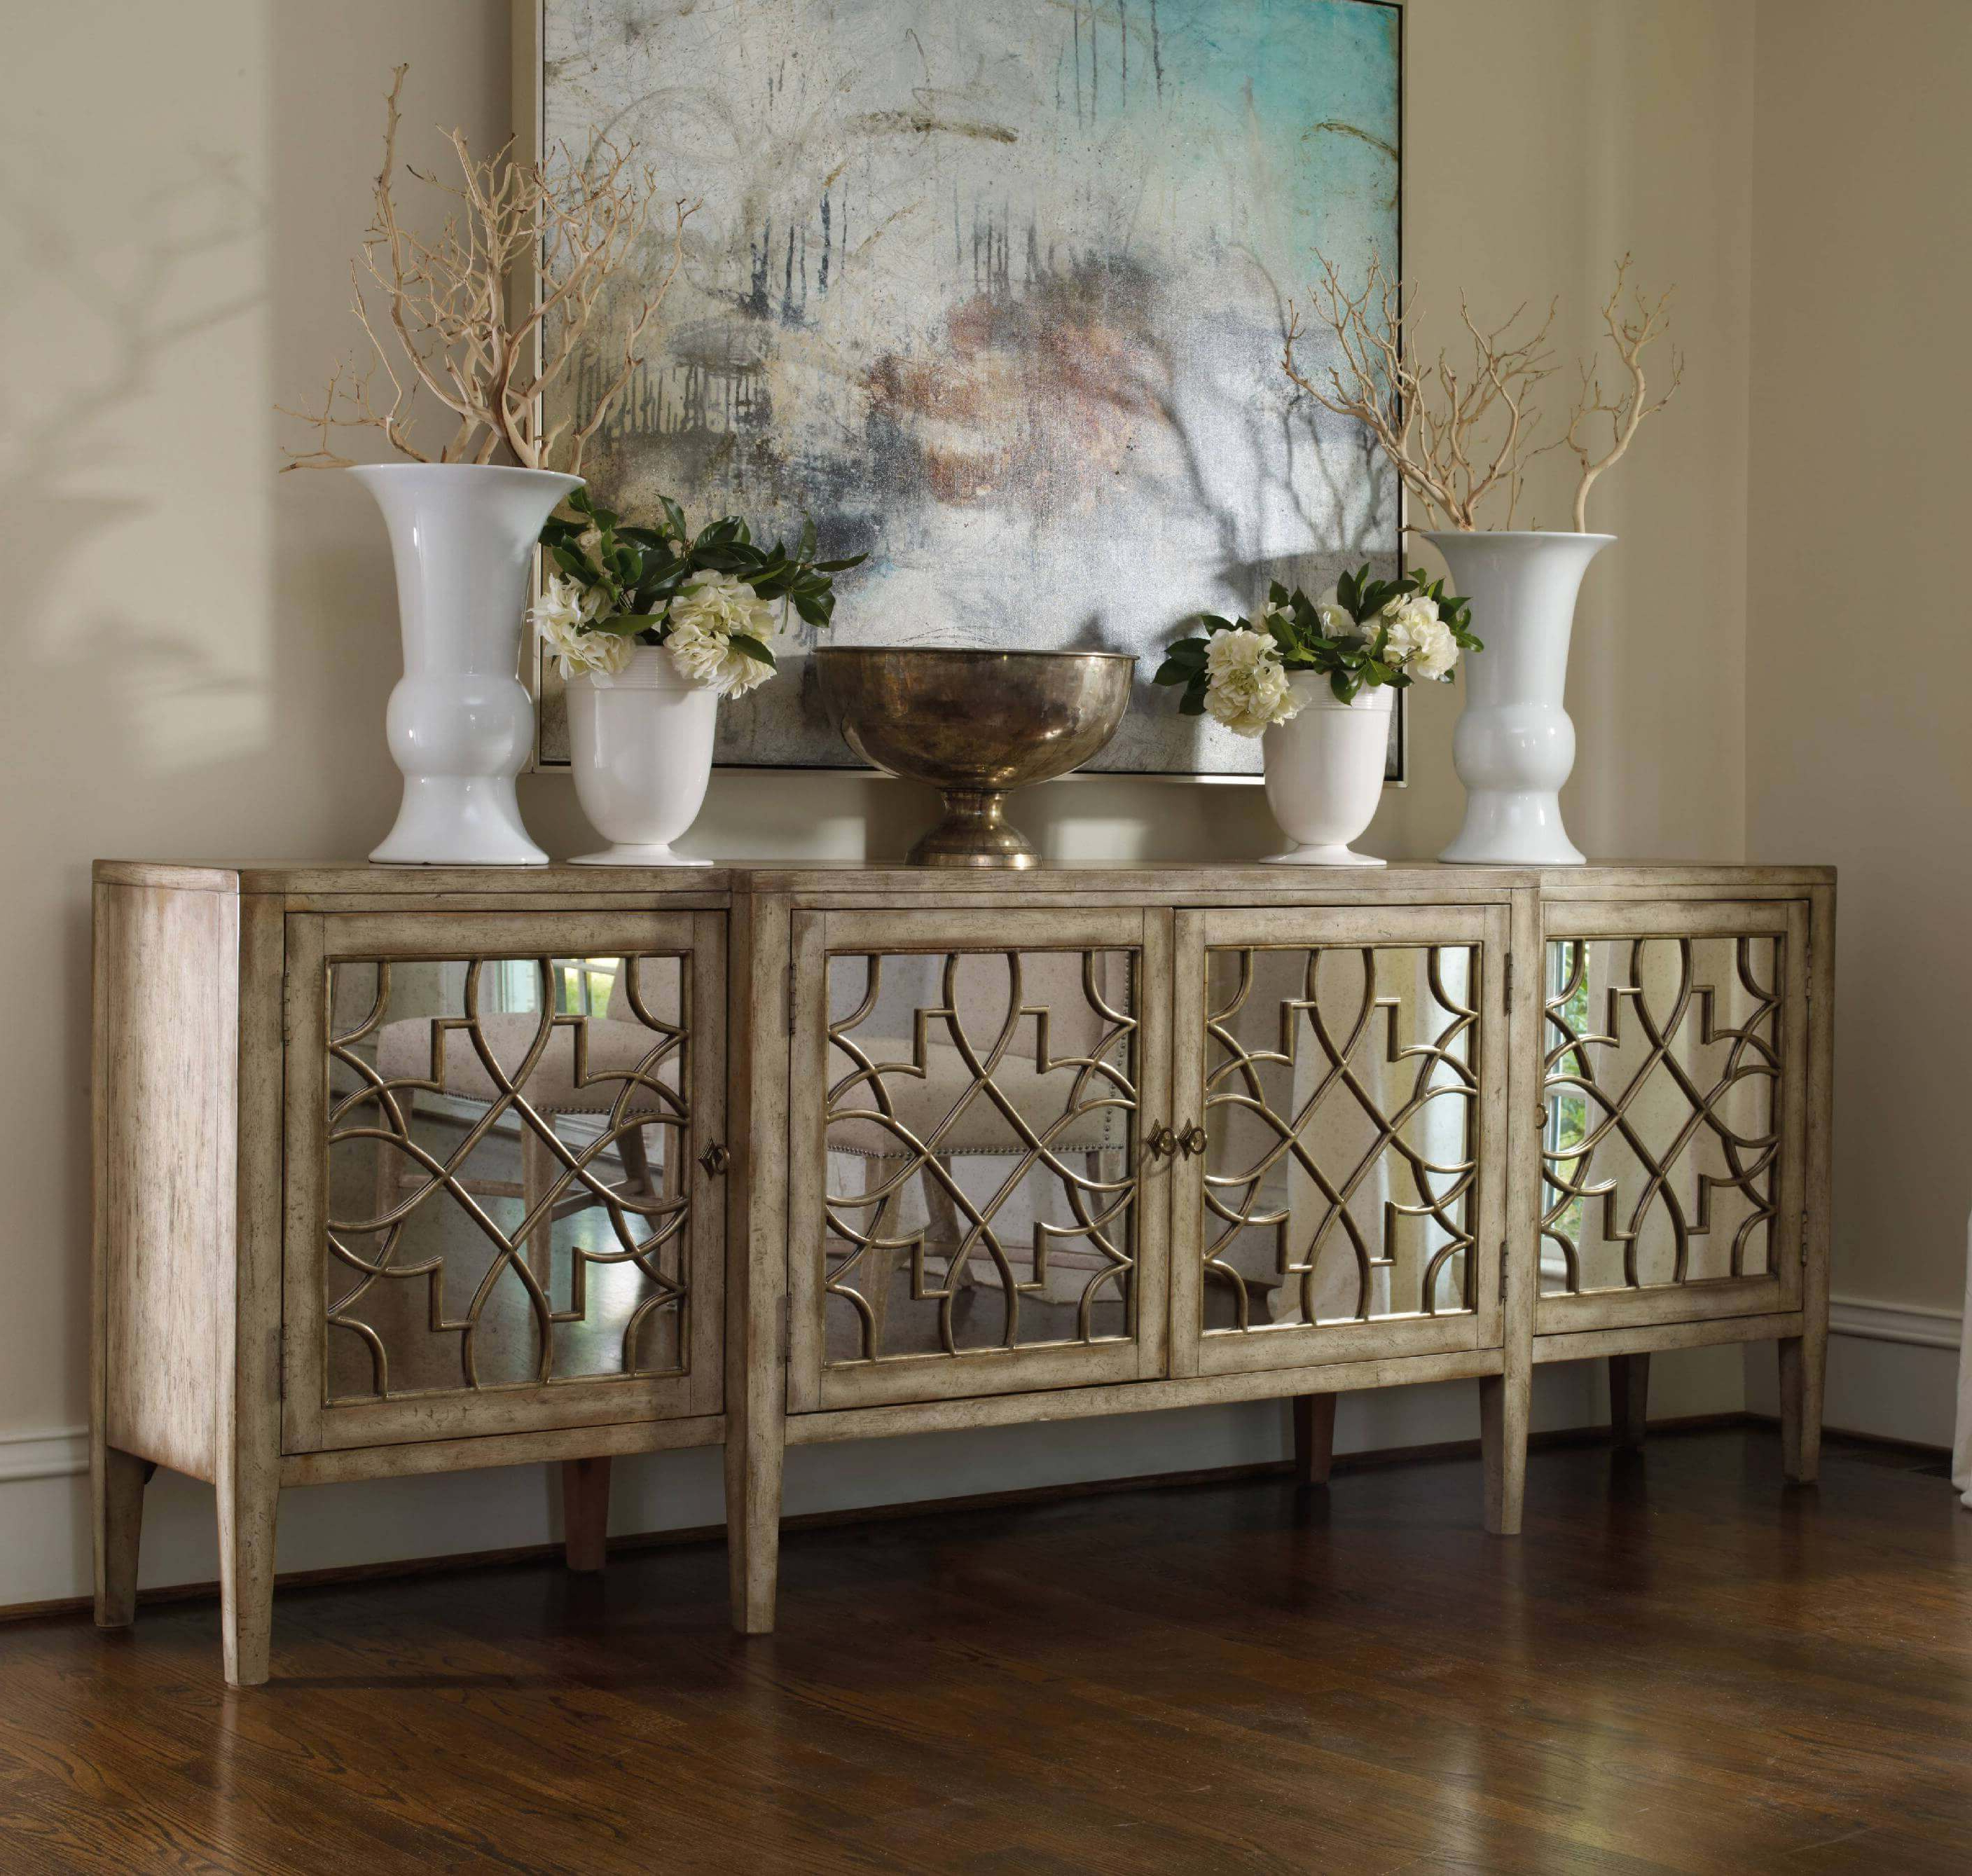 30 Best Rustic Glam Decoration Ideas And Designs For 2019 Throughout Natural Wood Mirrored Media Console Tables (View 12 of 20)